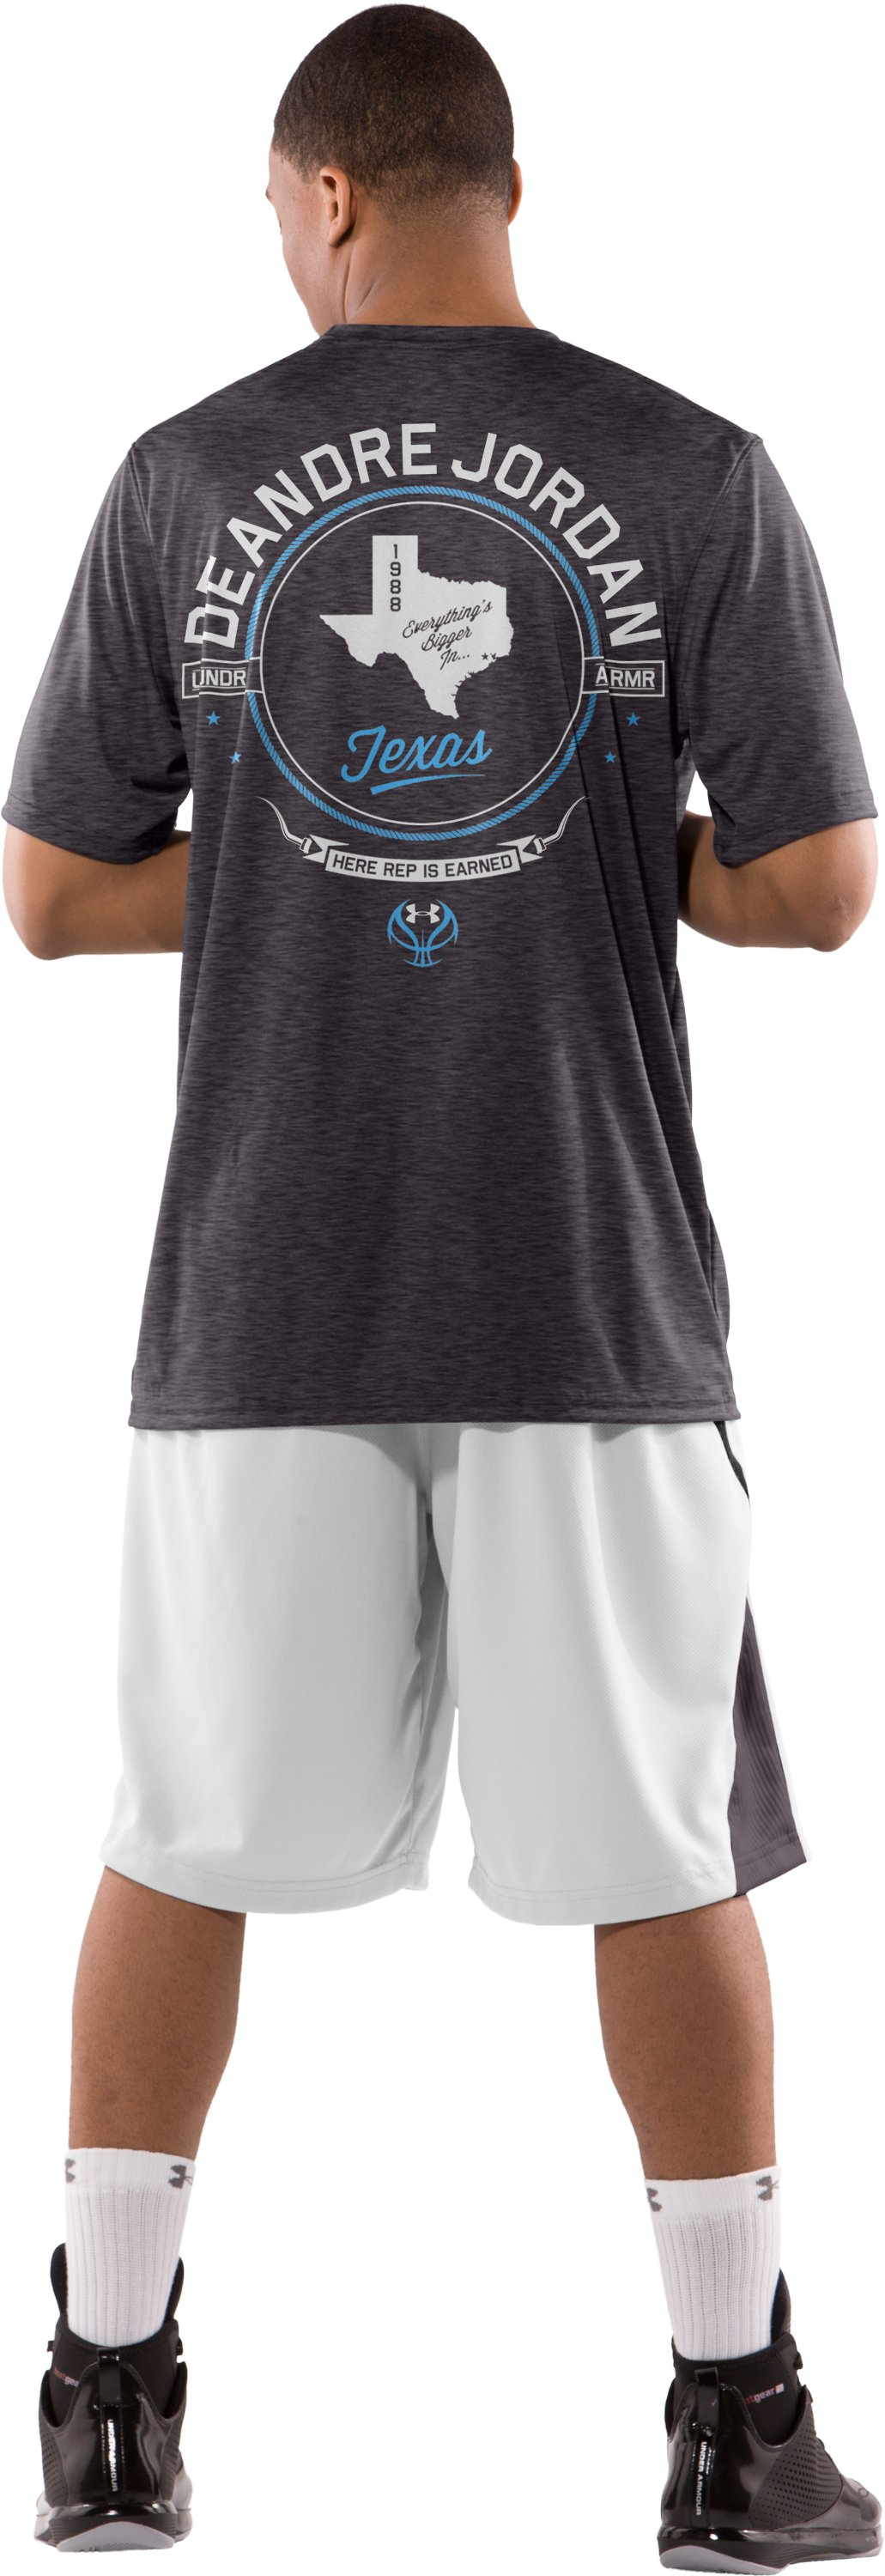 Men's DeAndre Jordan Player Reppin' T-Shirt, Carbon Heather